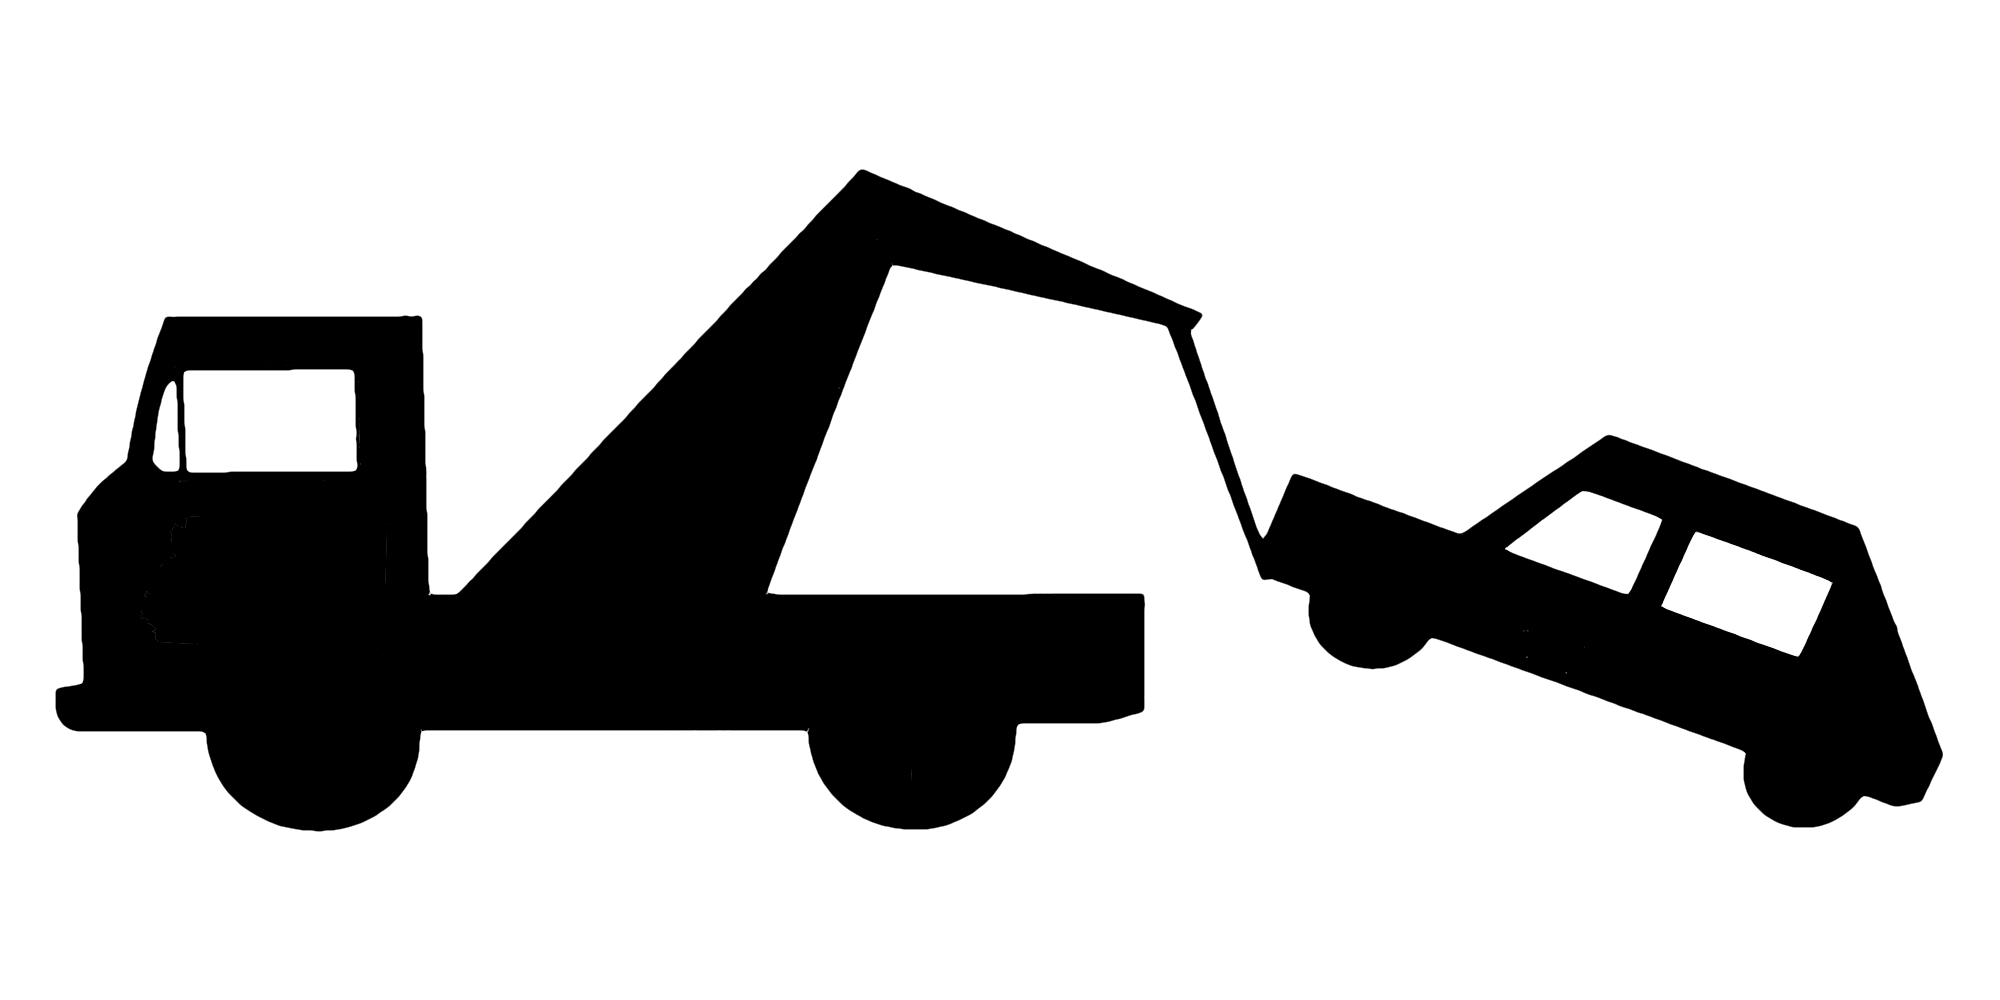 Towing car clipart picture black and white 28+ Collection of Towing Vehicle Clipart | High quality, free ... picture black and white